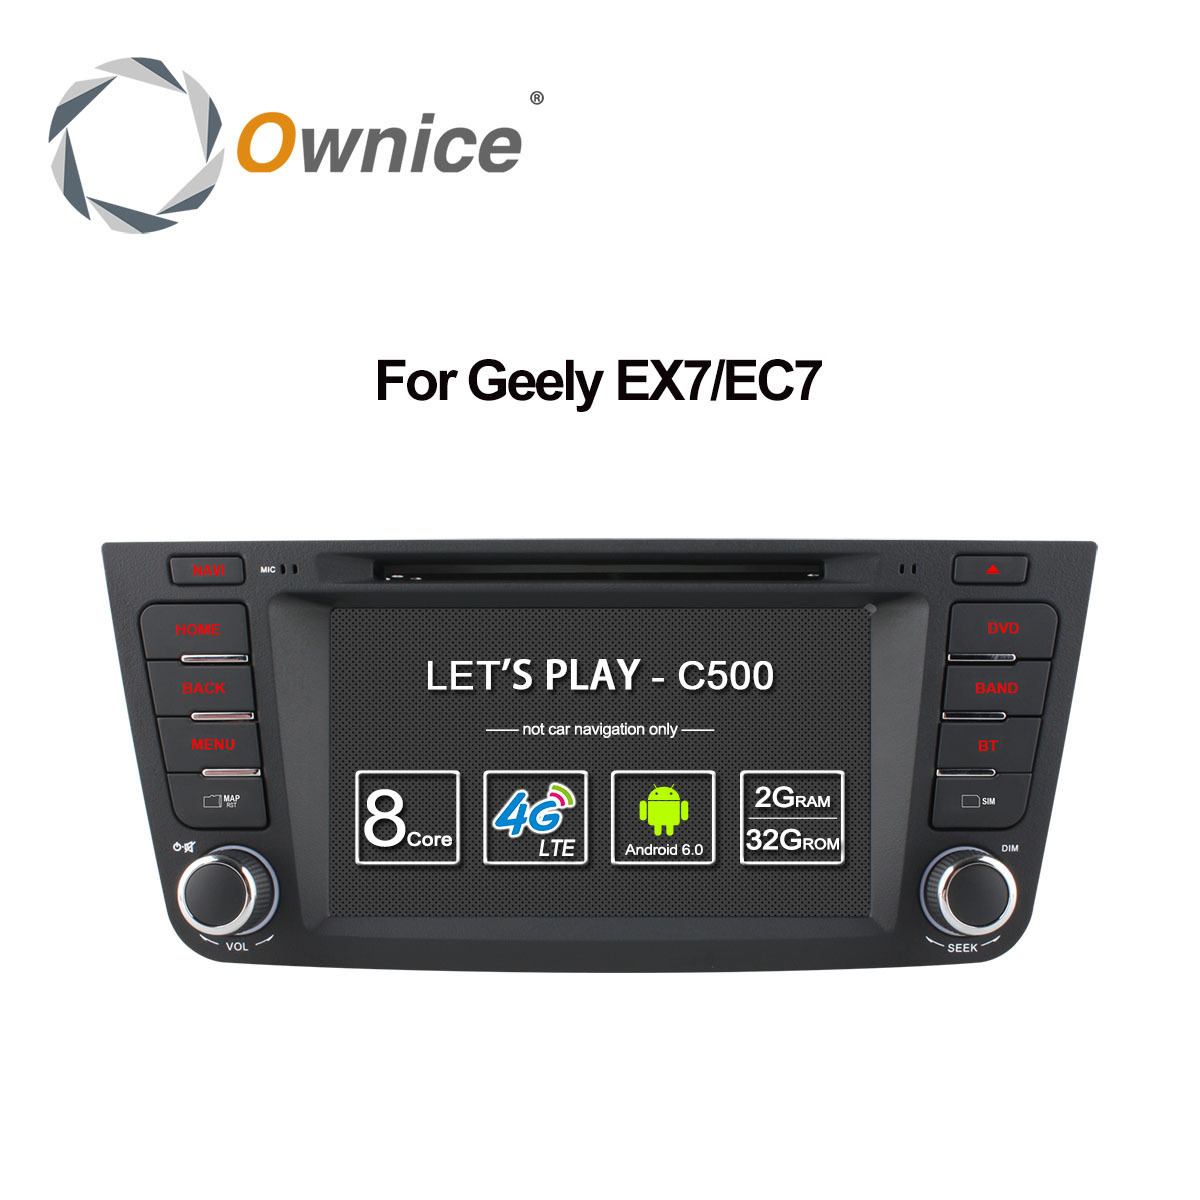 Ownice C500 Octa 8 Core Car DVD Player for Geely Emgrand GX7 EX7 X7 Android 6.0 Gps 2 din 2GB RAM 32GB ROM support 4G DAB+